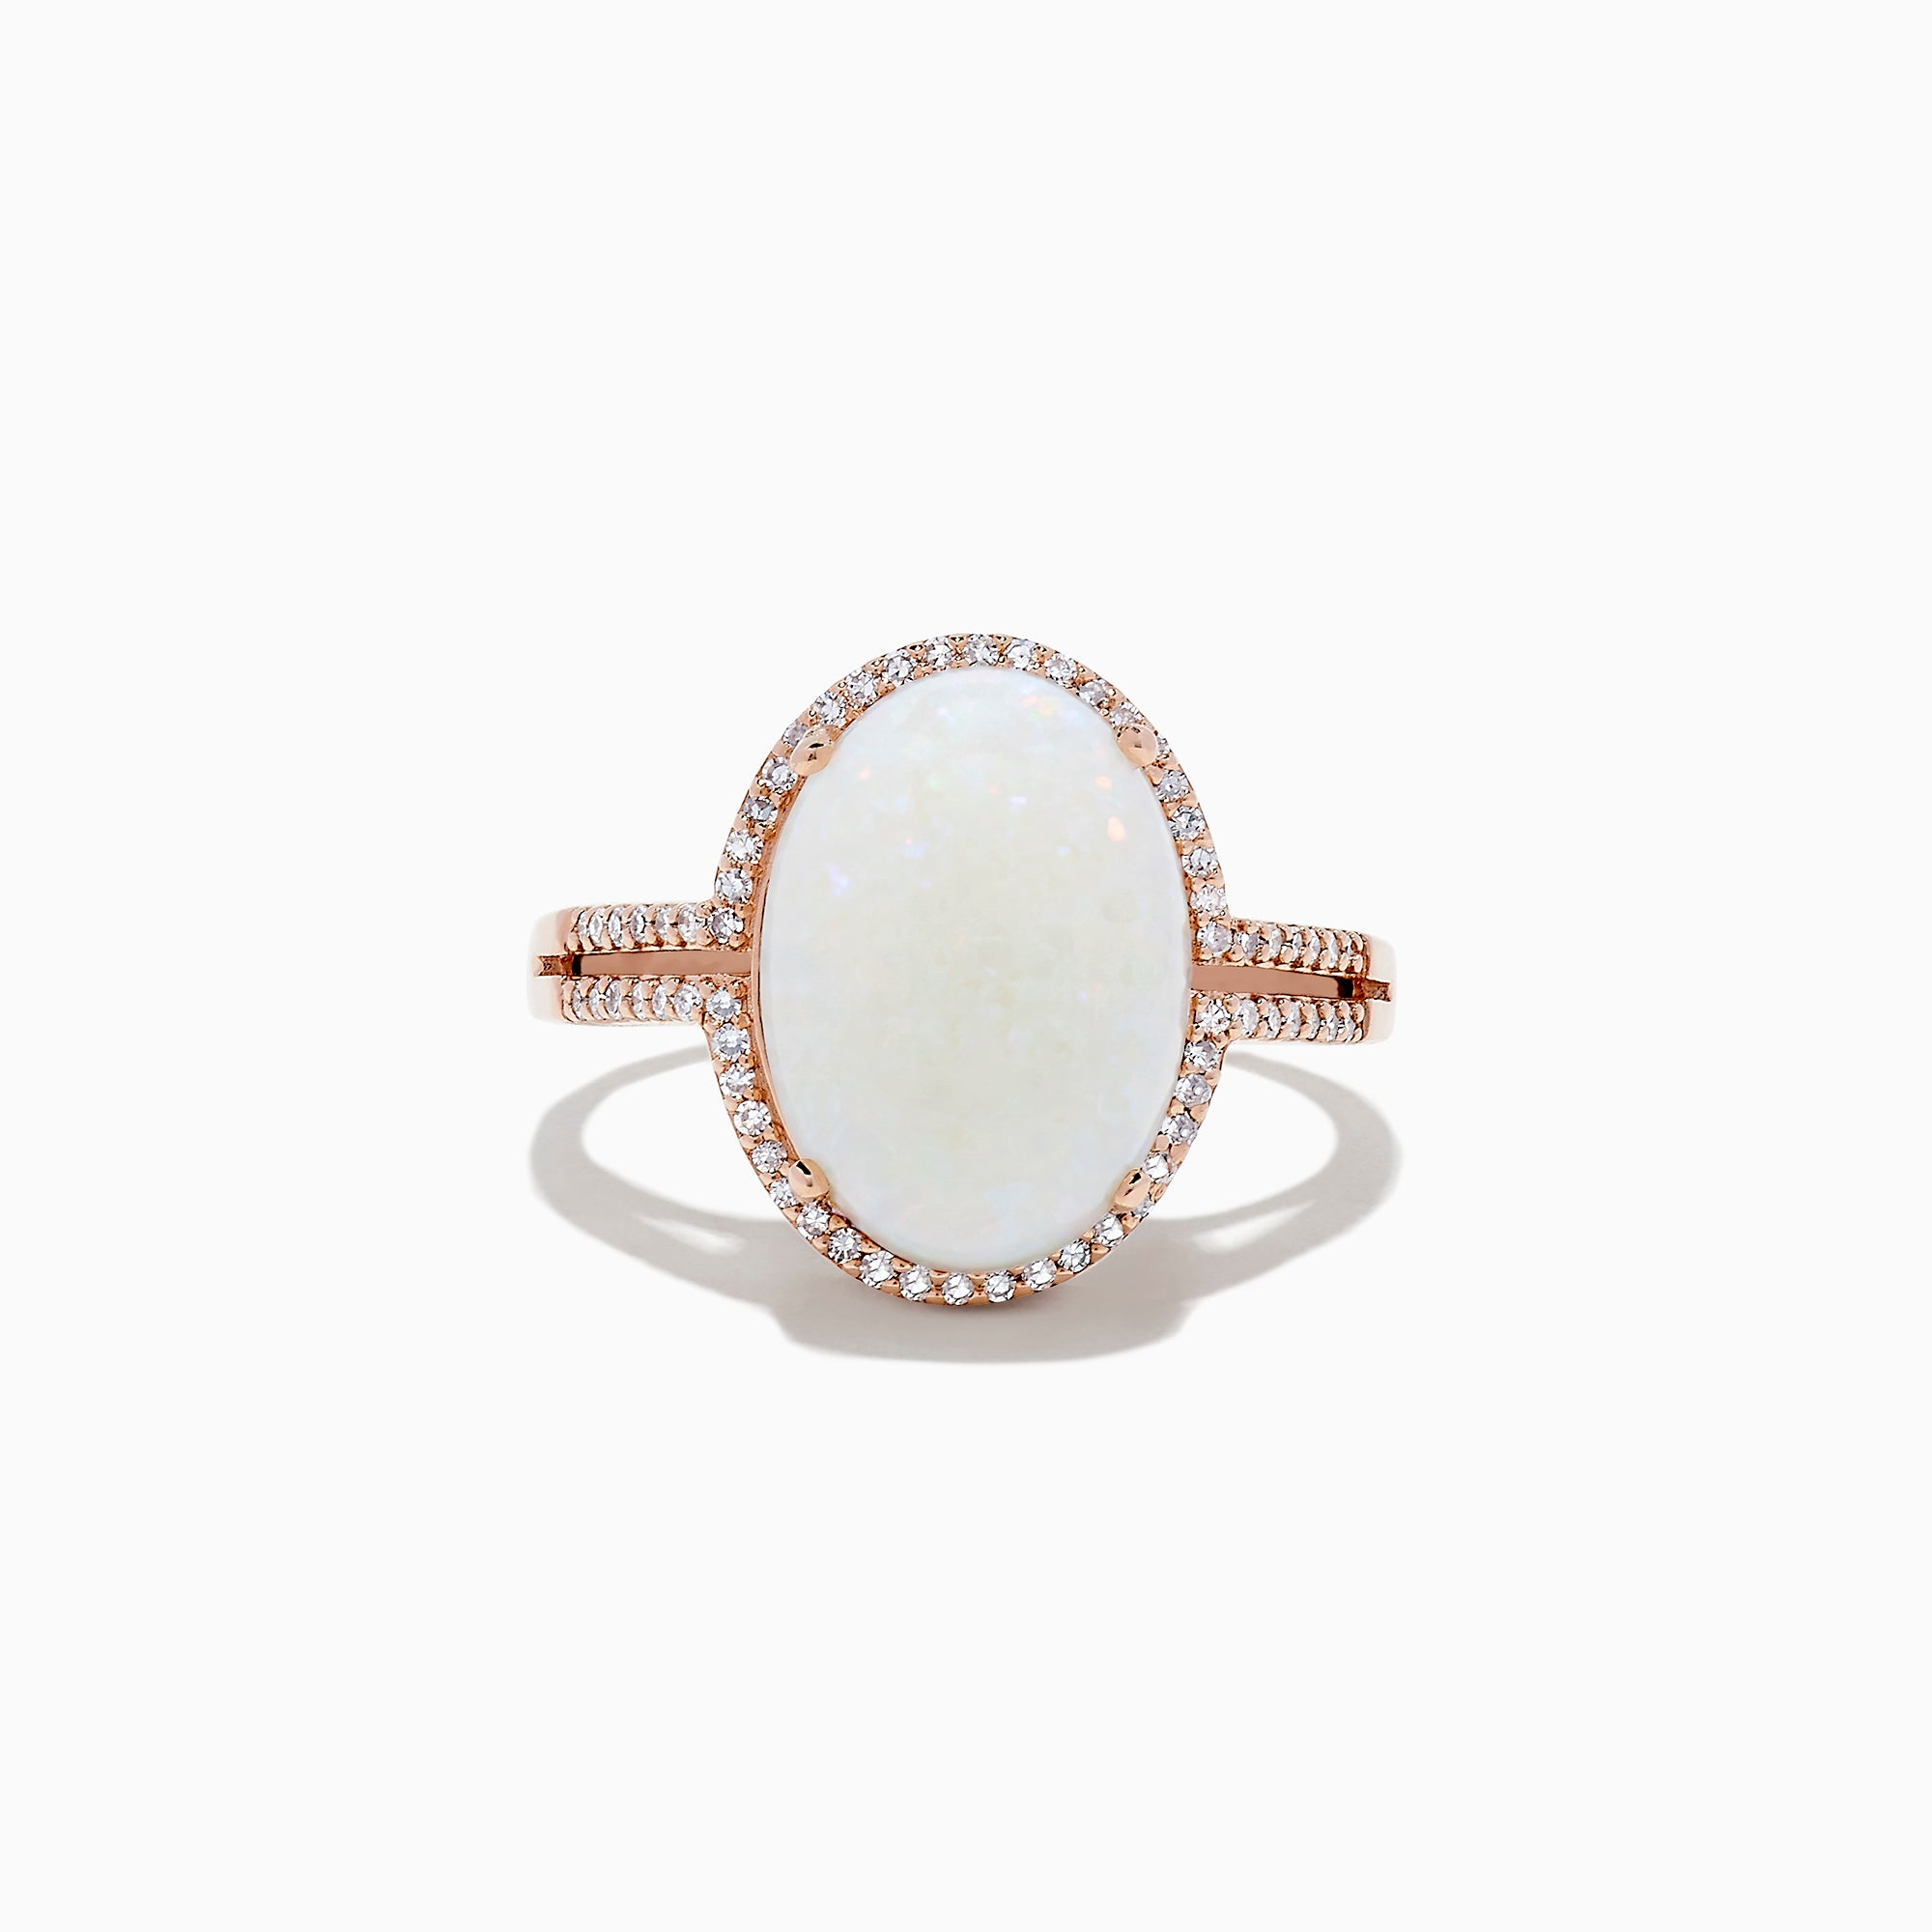 Effy 14K Rose Gold Opal and Diamond Cocktail Ring, 3.30 TCW